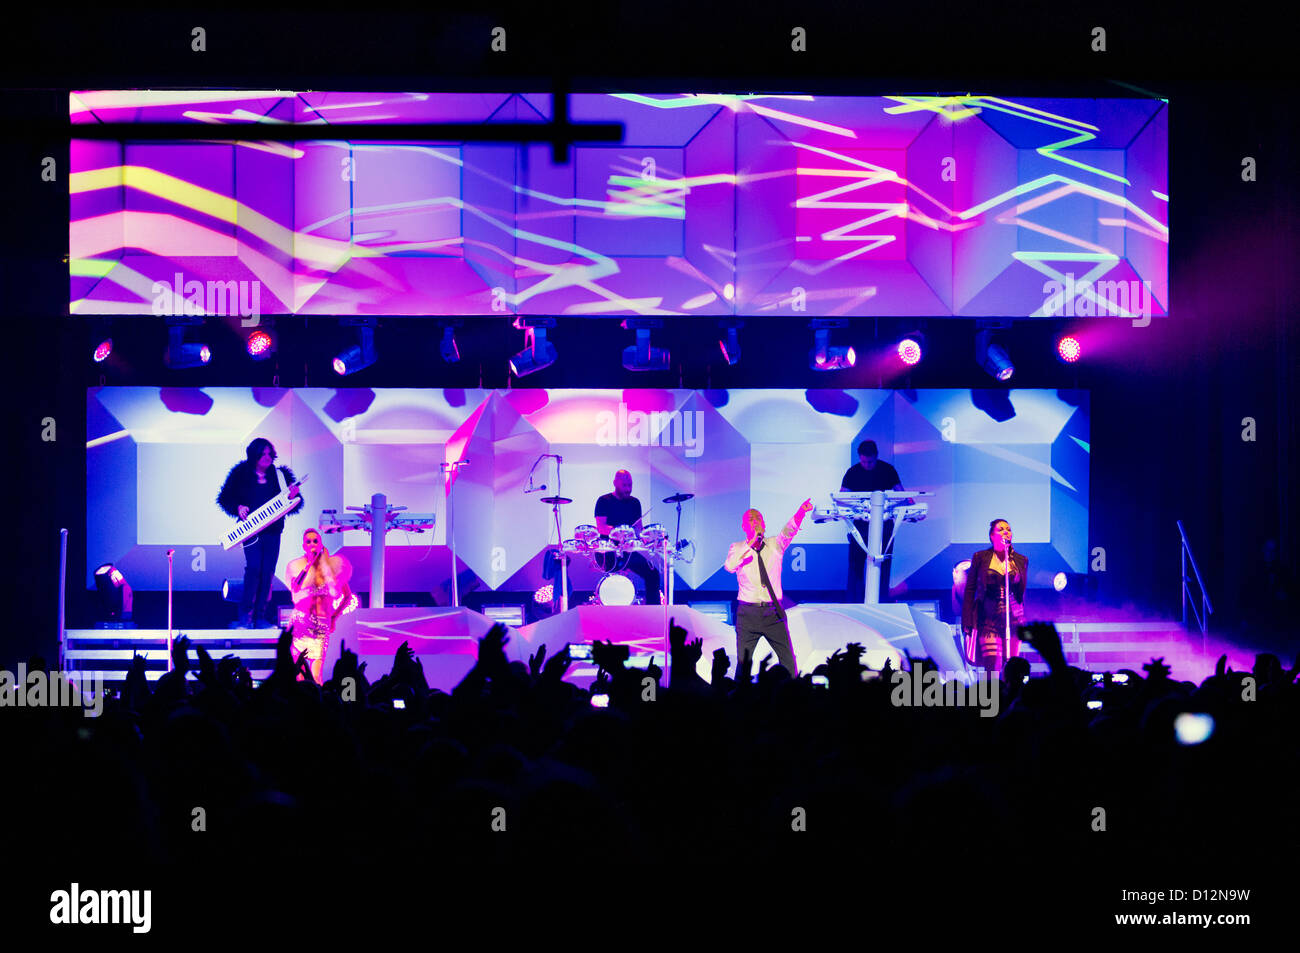 The Human League on stage in concert at Wolverhampton Civic Hall on 2 December 2012 - Stock Image